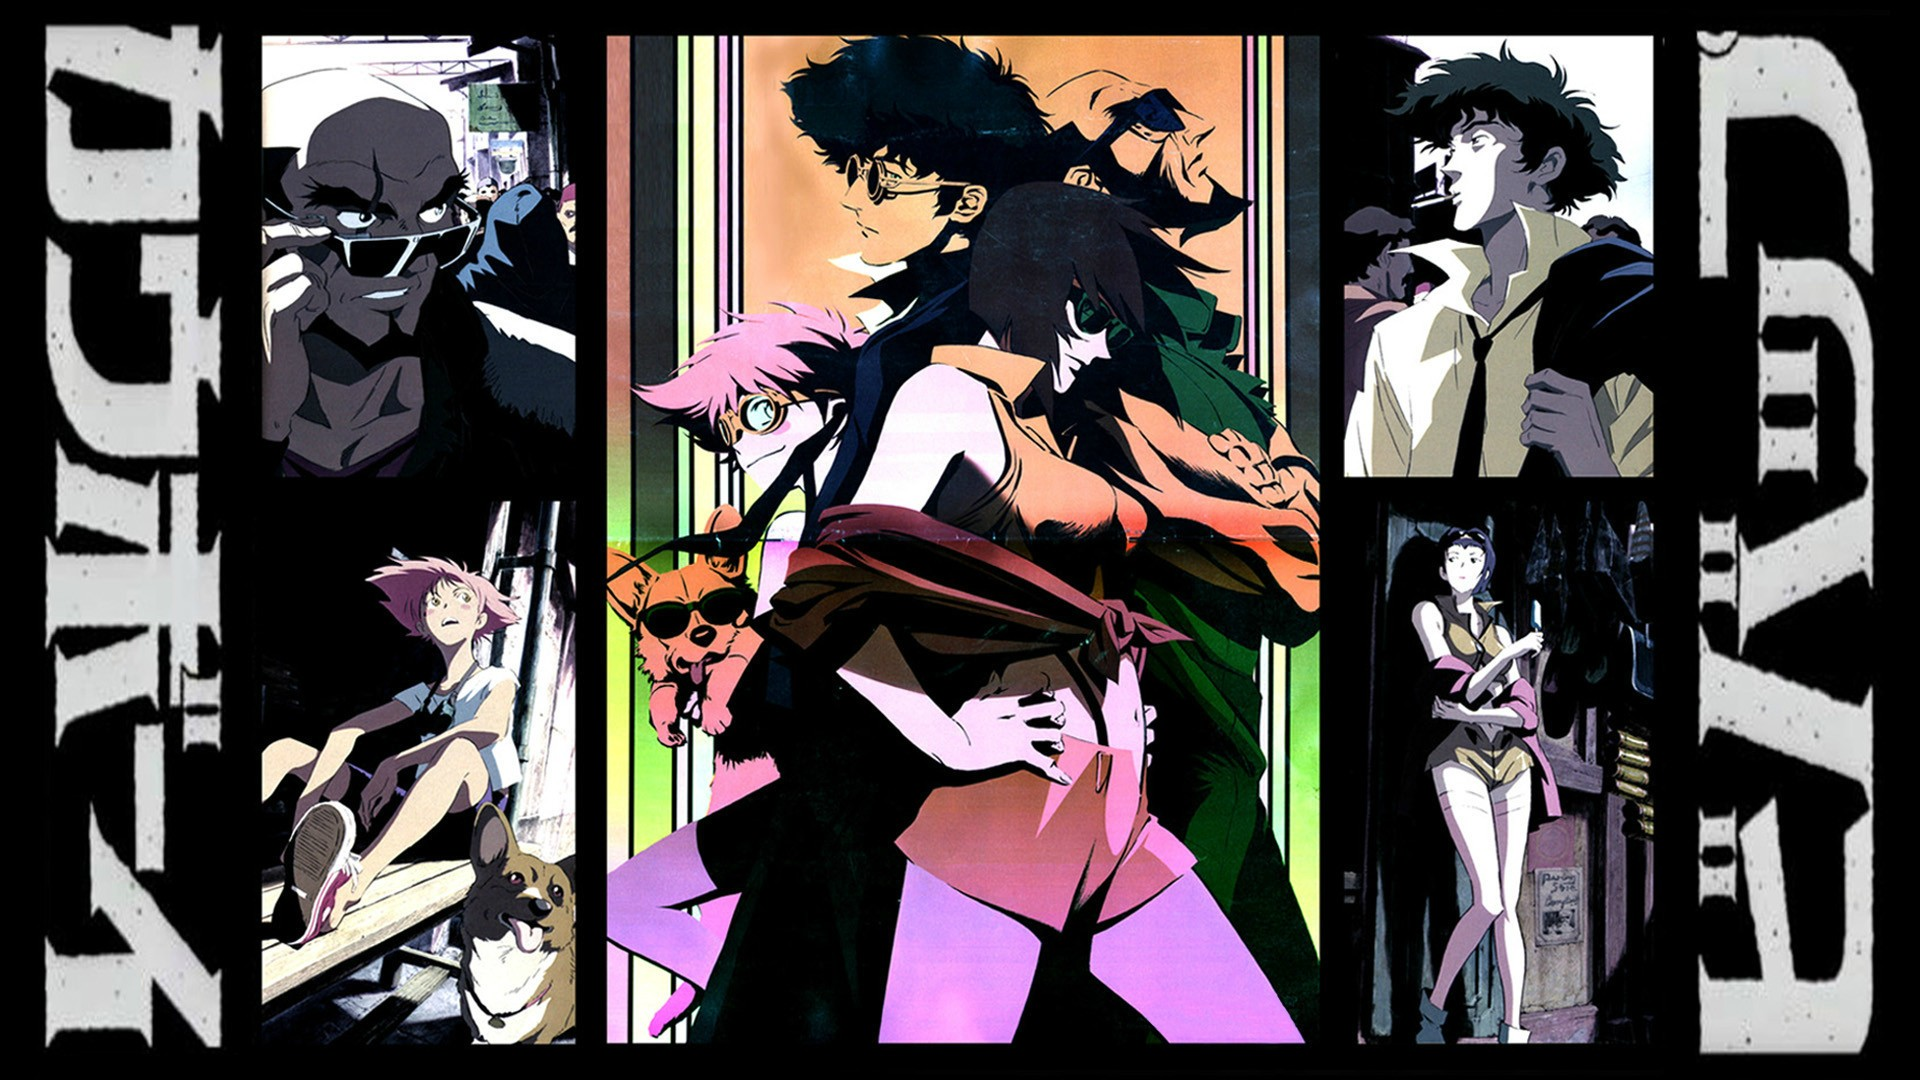 Cowboy Bebop Anime Wallpapers High Quality   Download Free